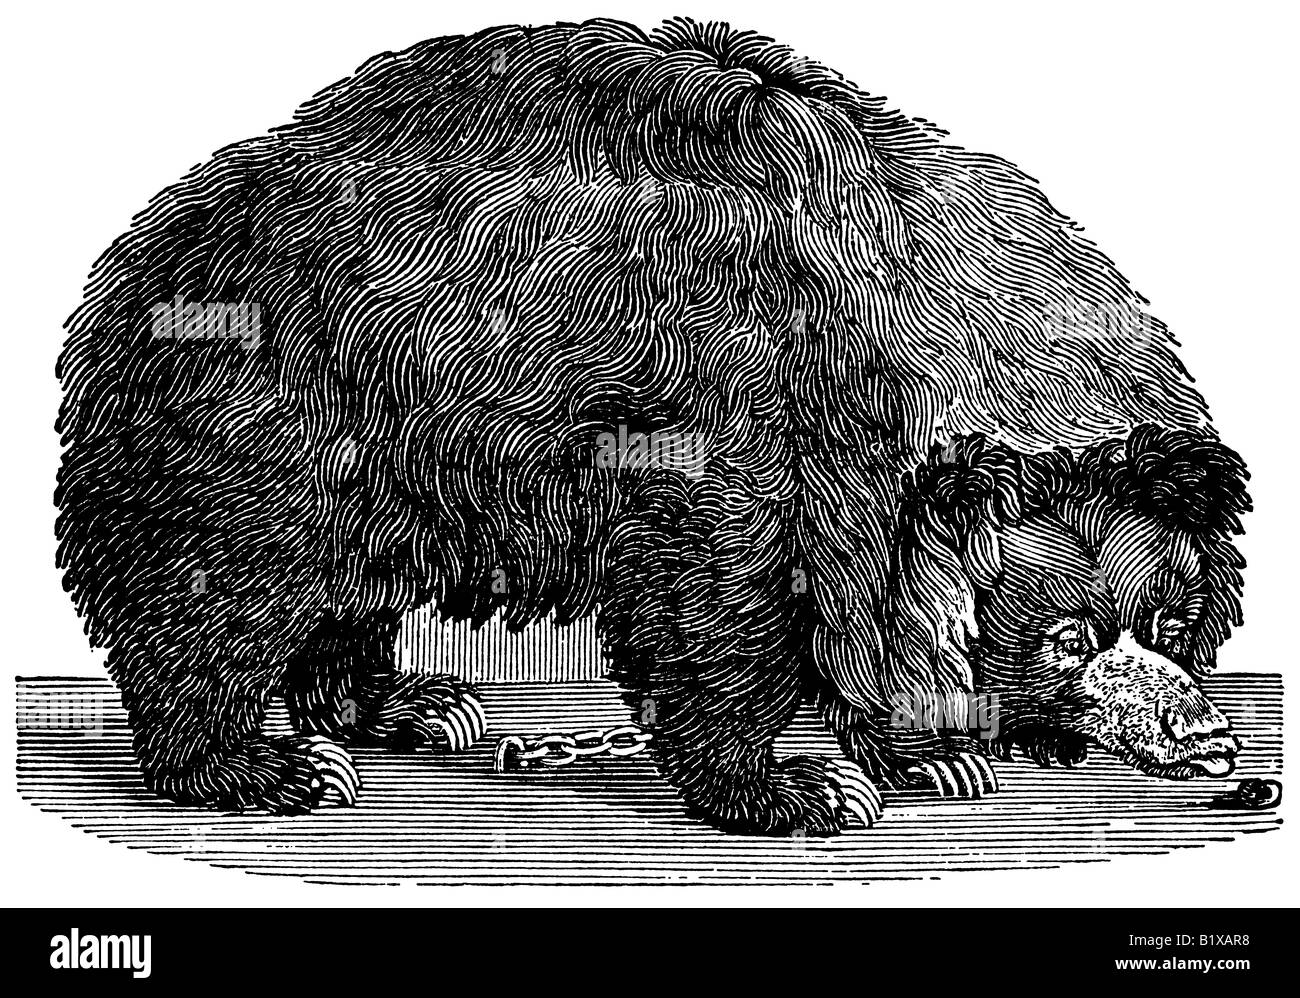 An antique wood engraving (woodcut) of a black bear made by Thomas Bewick in 1790. - Stock Image